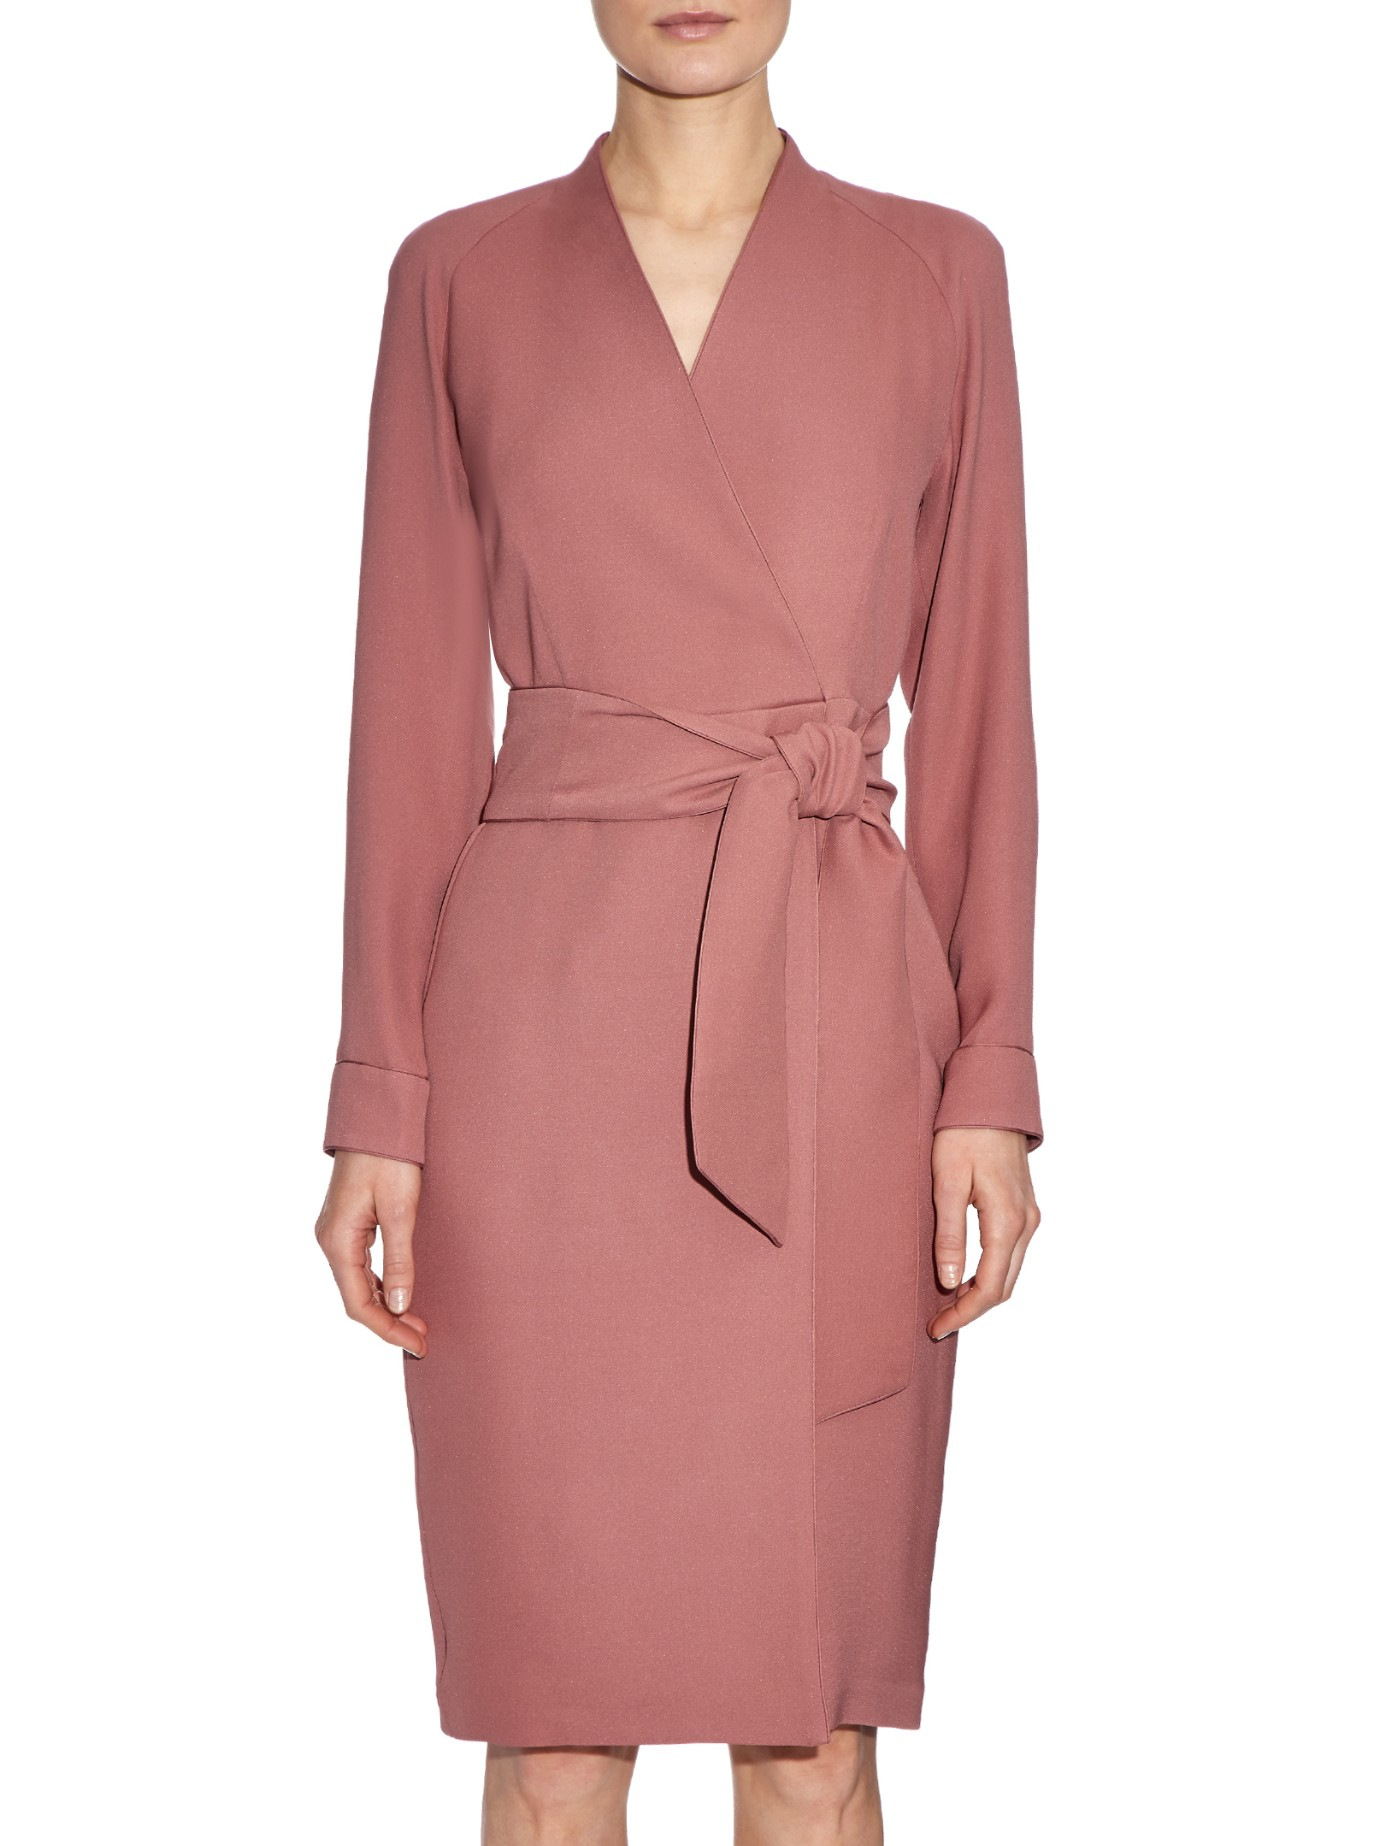 max mara vs pinko Buy second-hand pinko heels for women on vestiaire collective  max mara   whether you are a fashion lover or a true connoisseur of pinko products,.